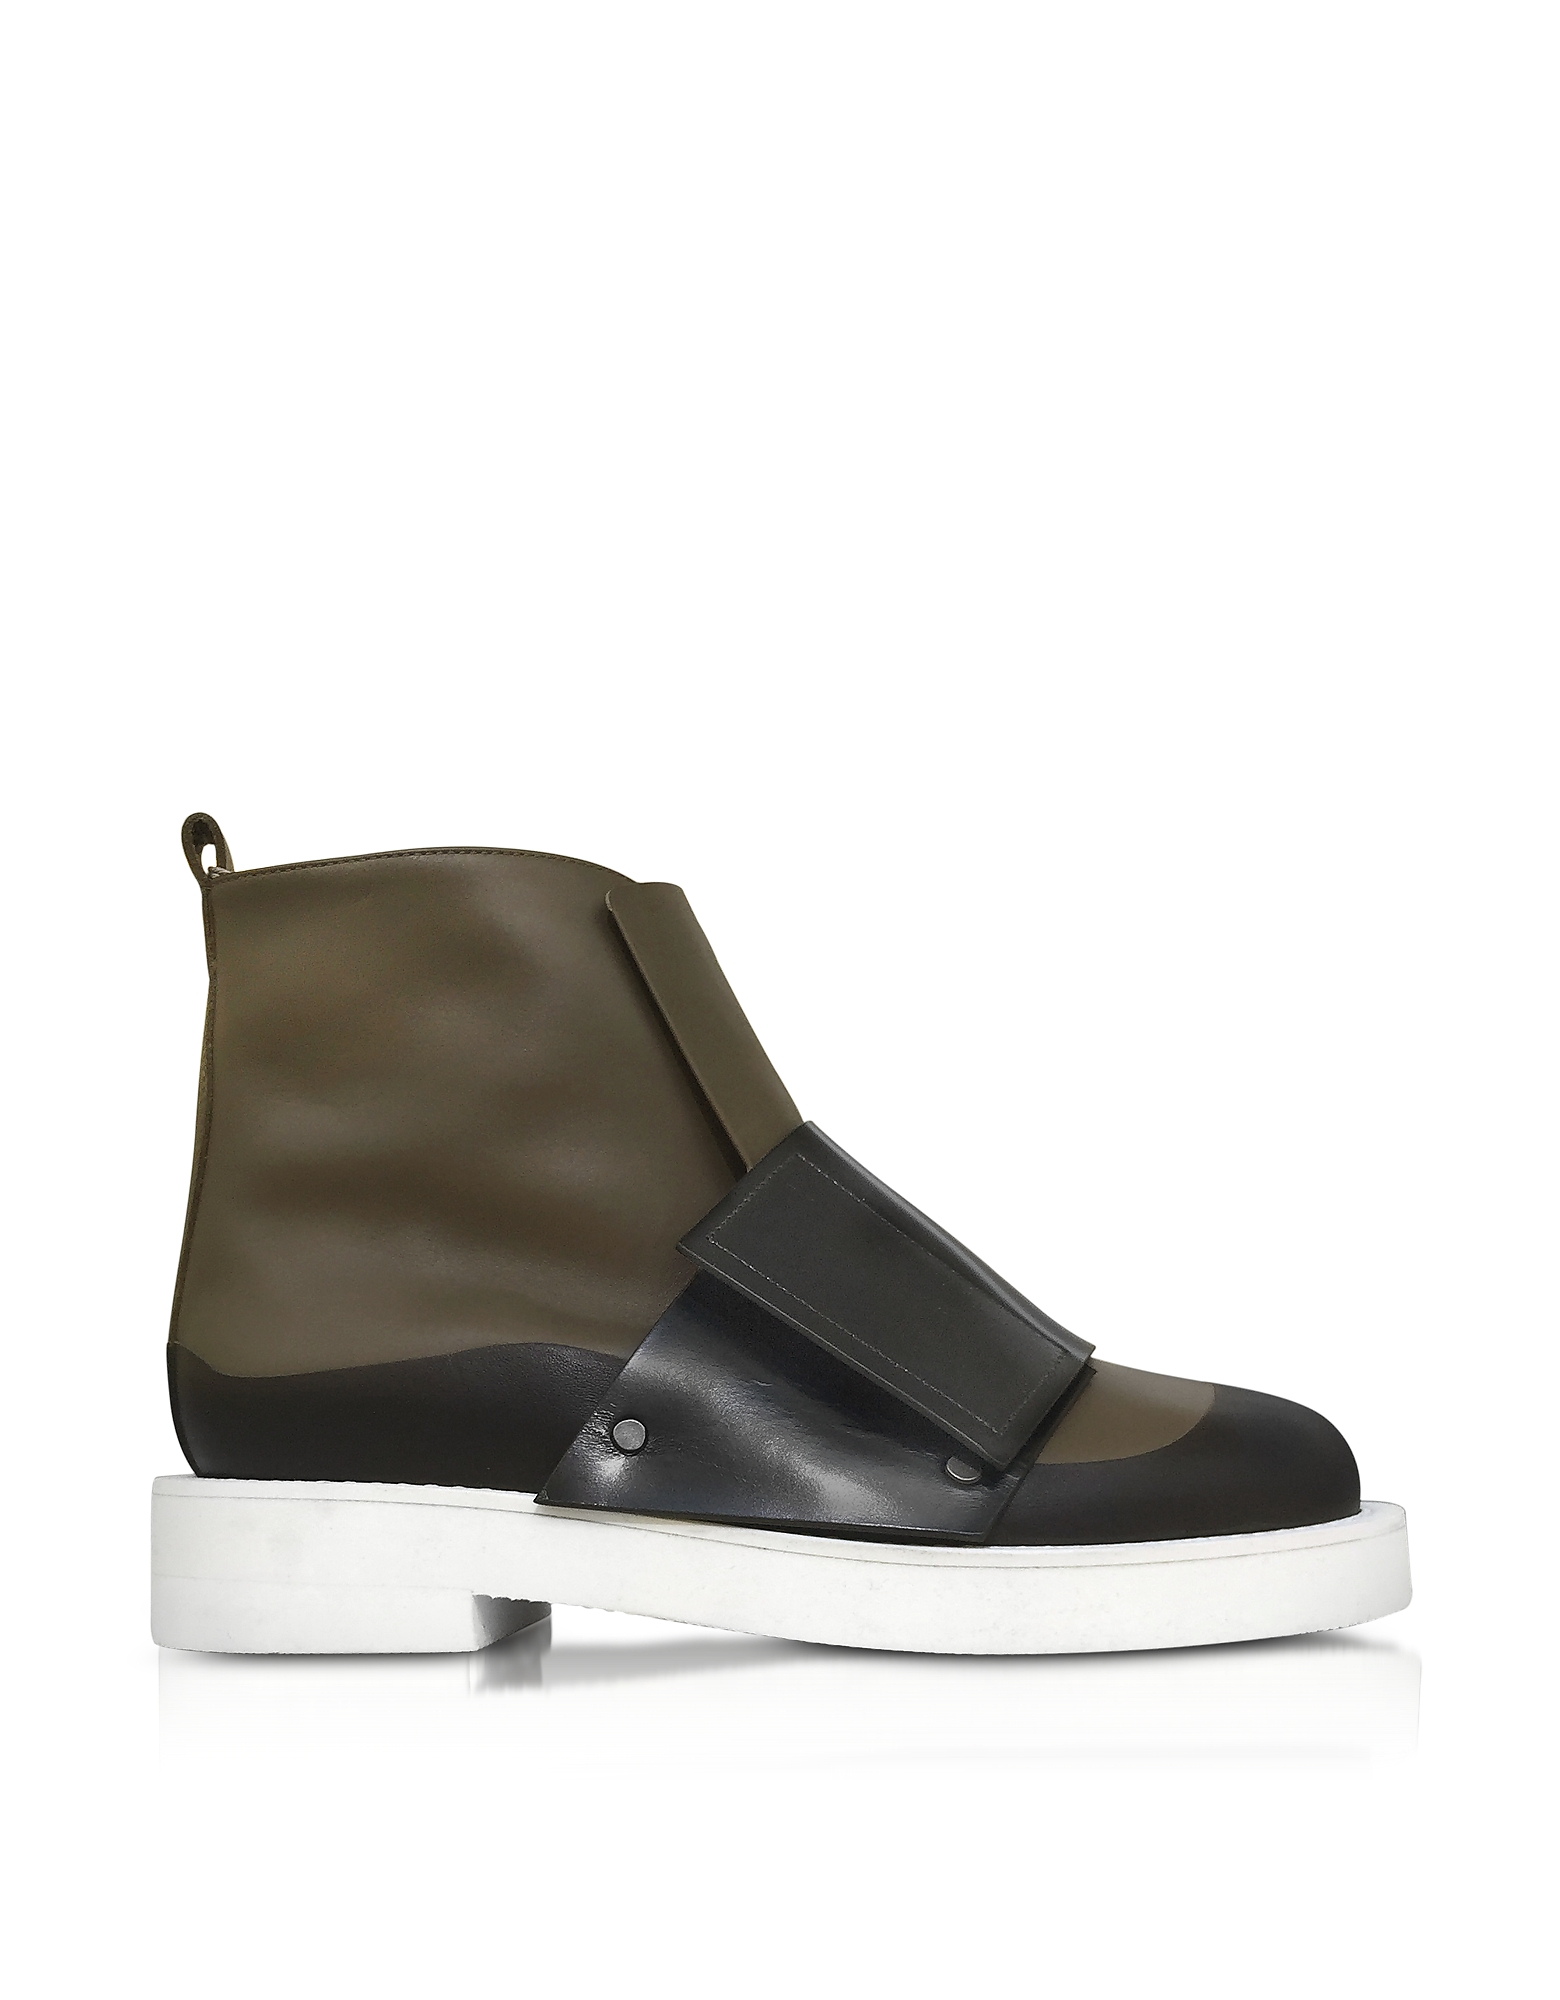 Marni Dark Olive and Black Leather Ankle Boot